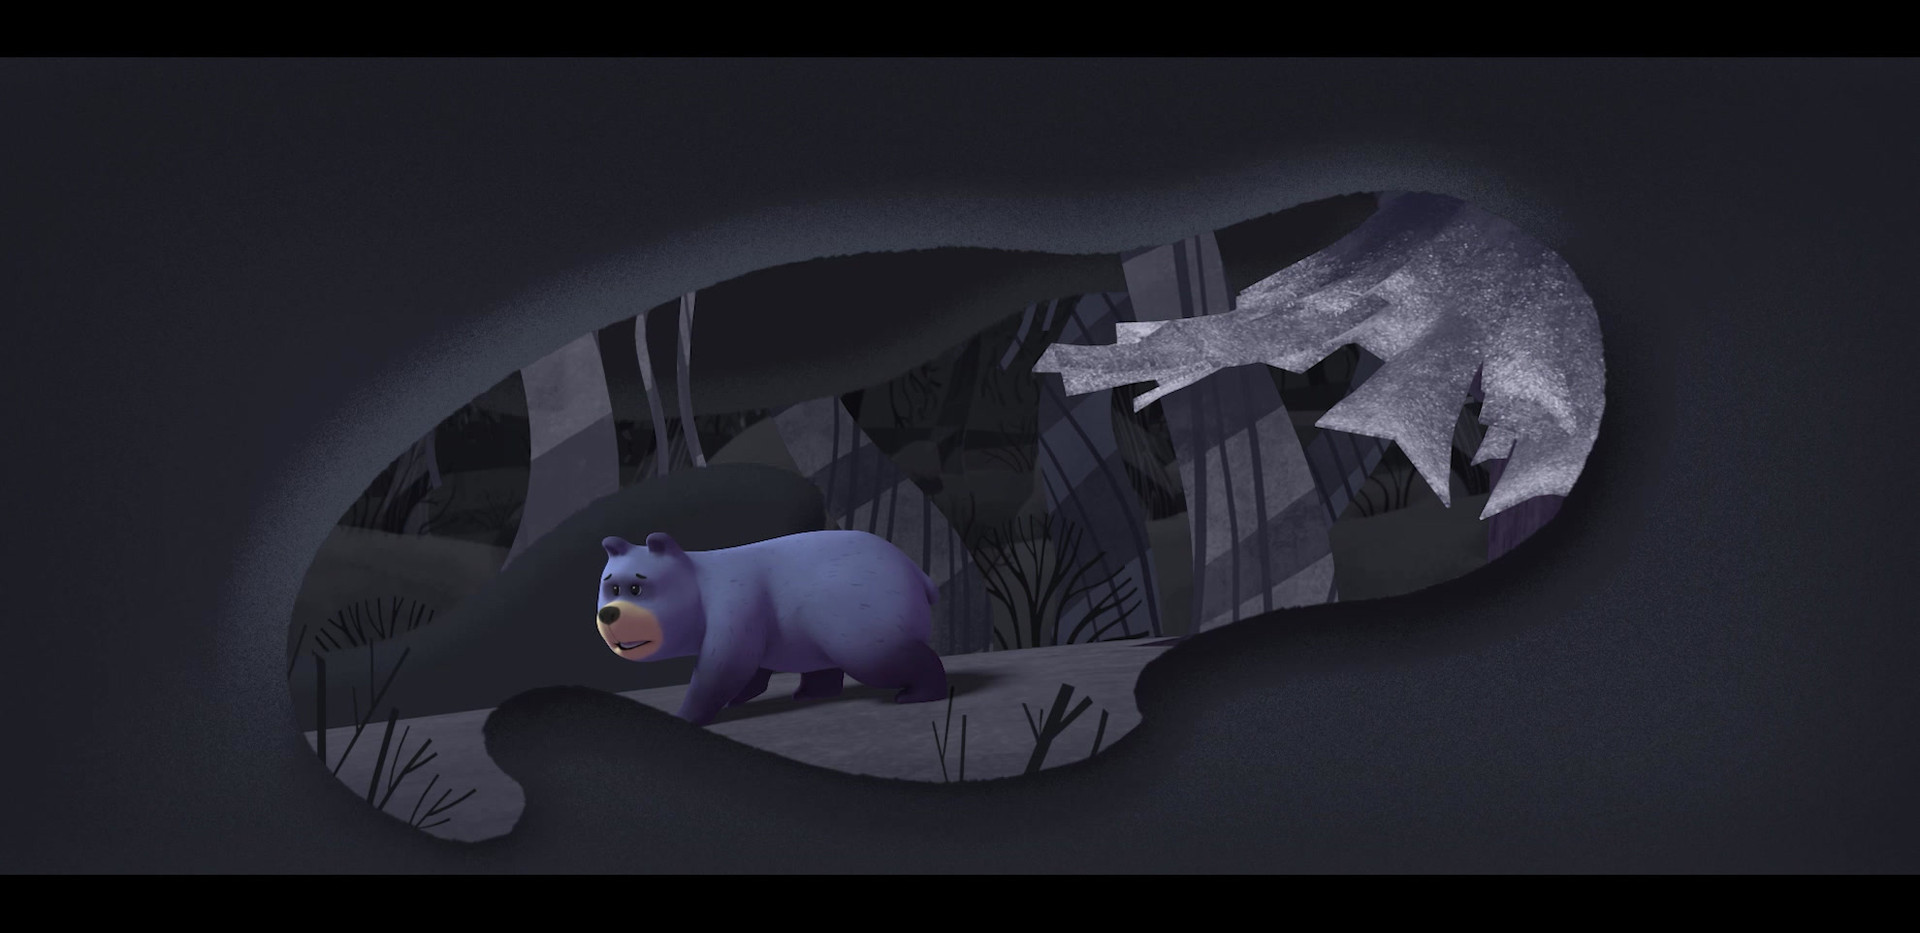 3D Bearly Animation by Hal Kujawski 2D FX by Cosimo Faeita 2D Cleanup and Color by Alison Agnew